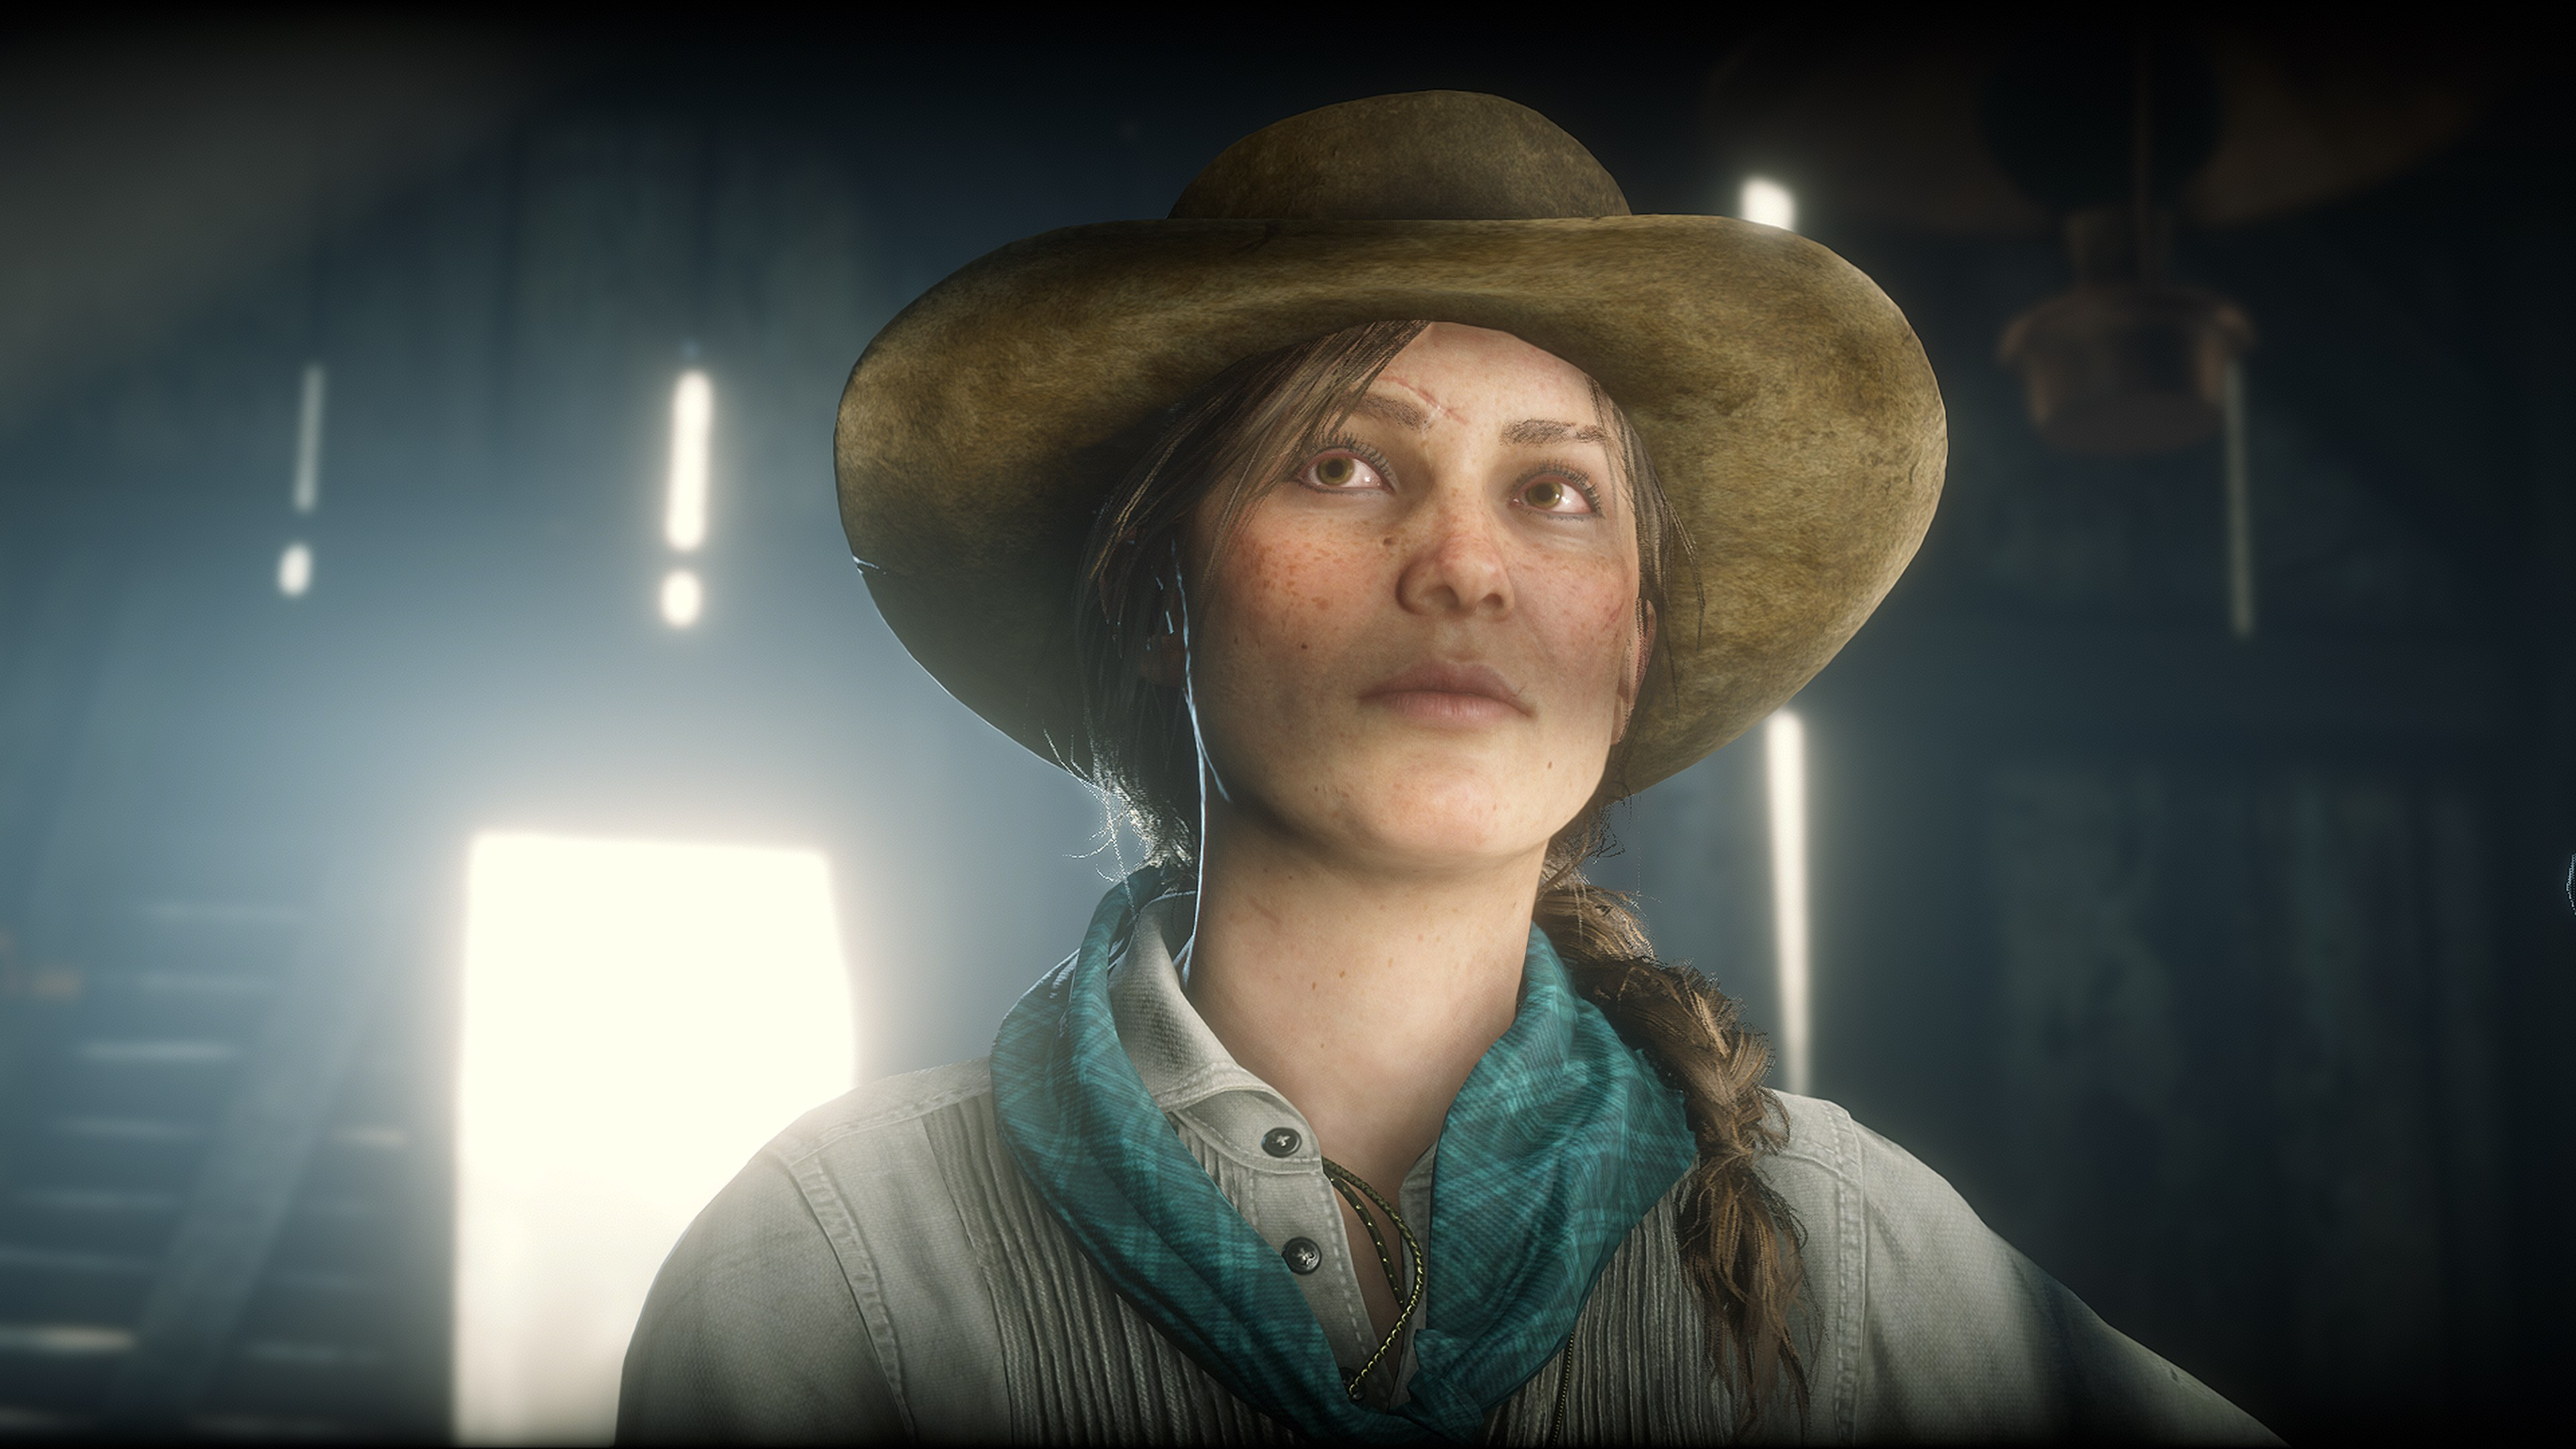 Red Dead Redemption 2 Leak in 2016 That No One Believed